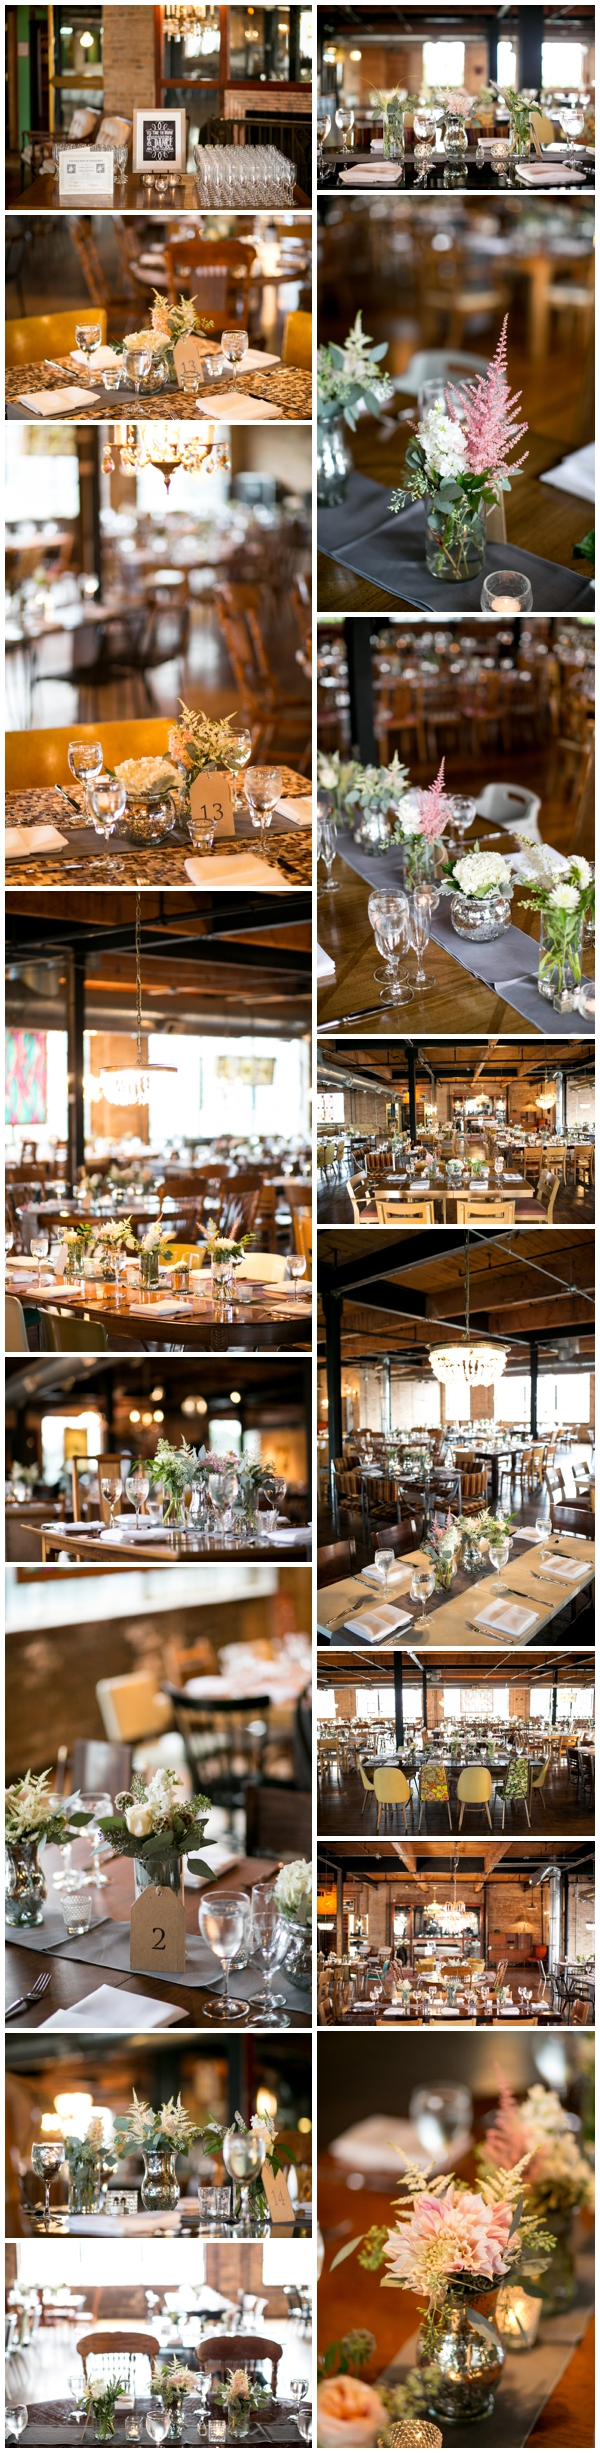 salvage one-chicago-wedding-photographer-skyline-rustic-summer-candid_0031